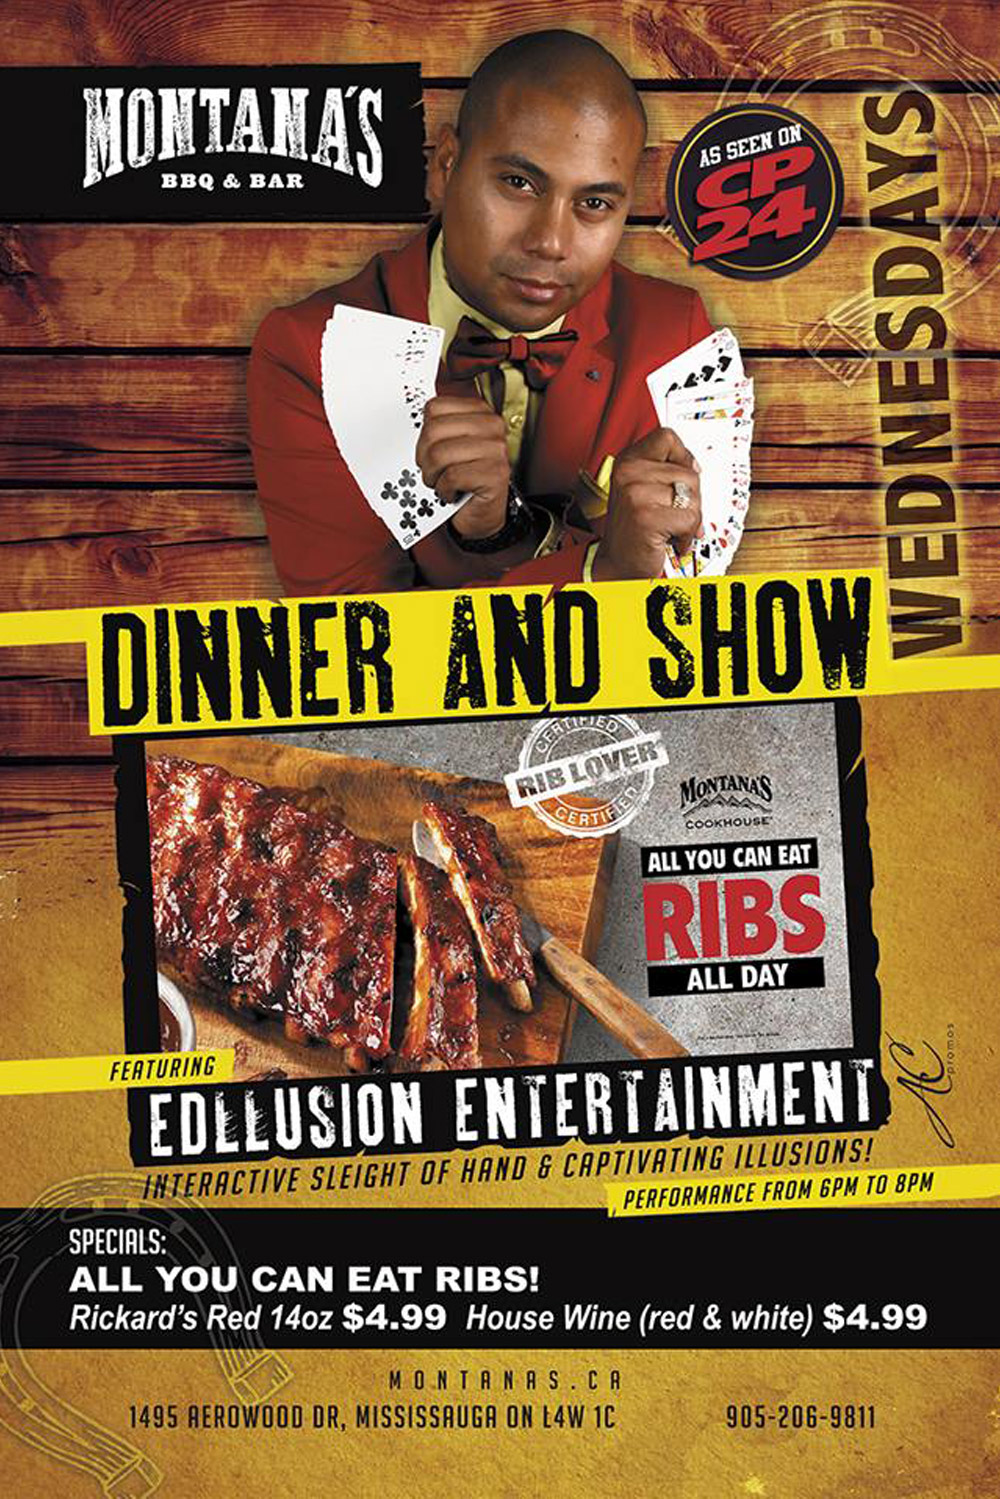 magic shows in toronto with dinner edllusion